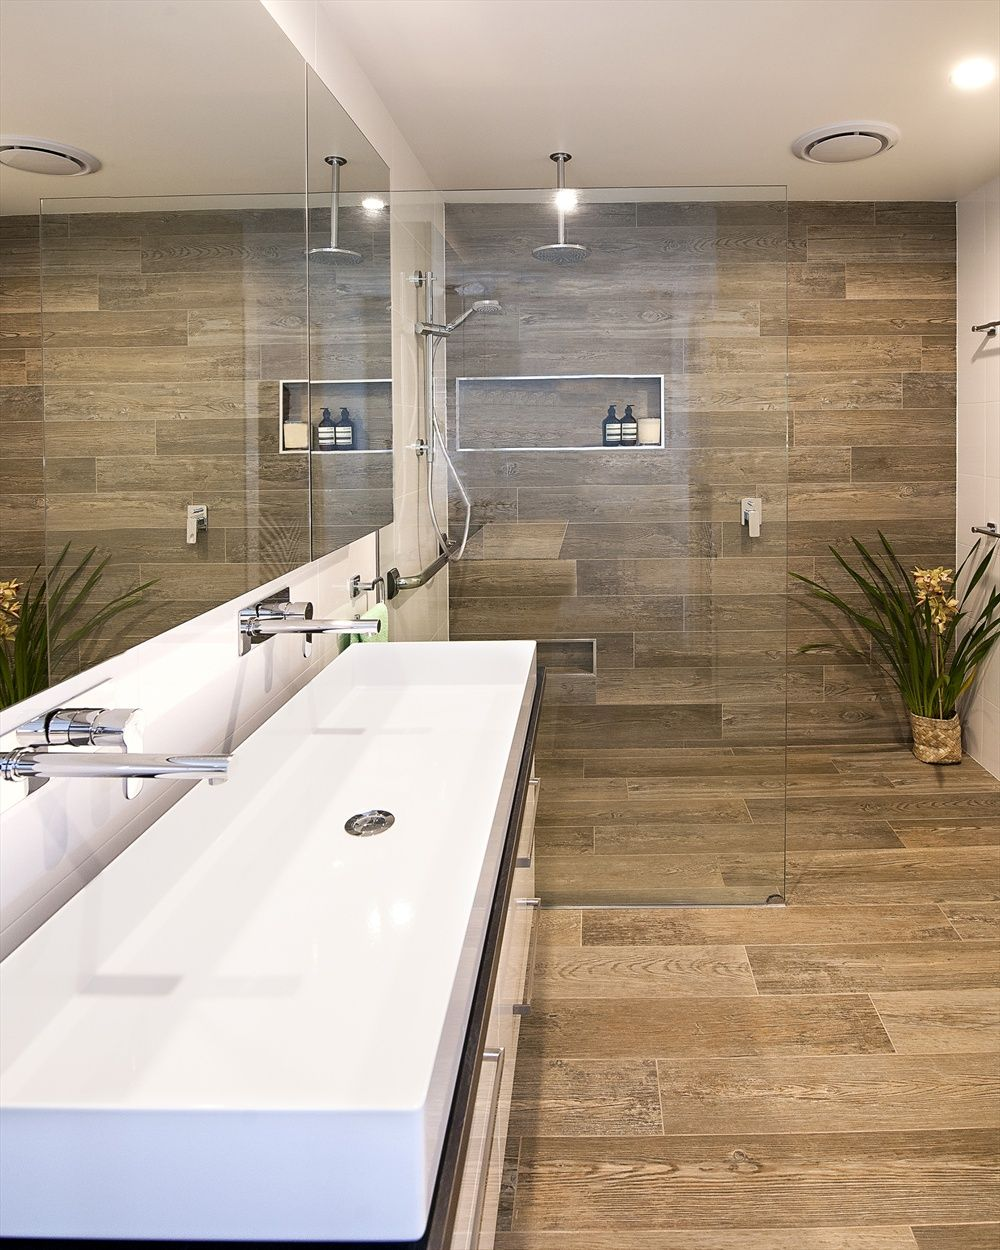 What do you think of this Bathrooms idea I got from Beaumont Tiles ...